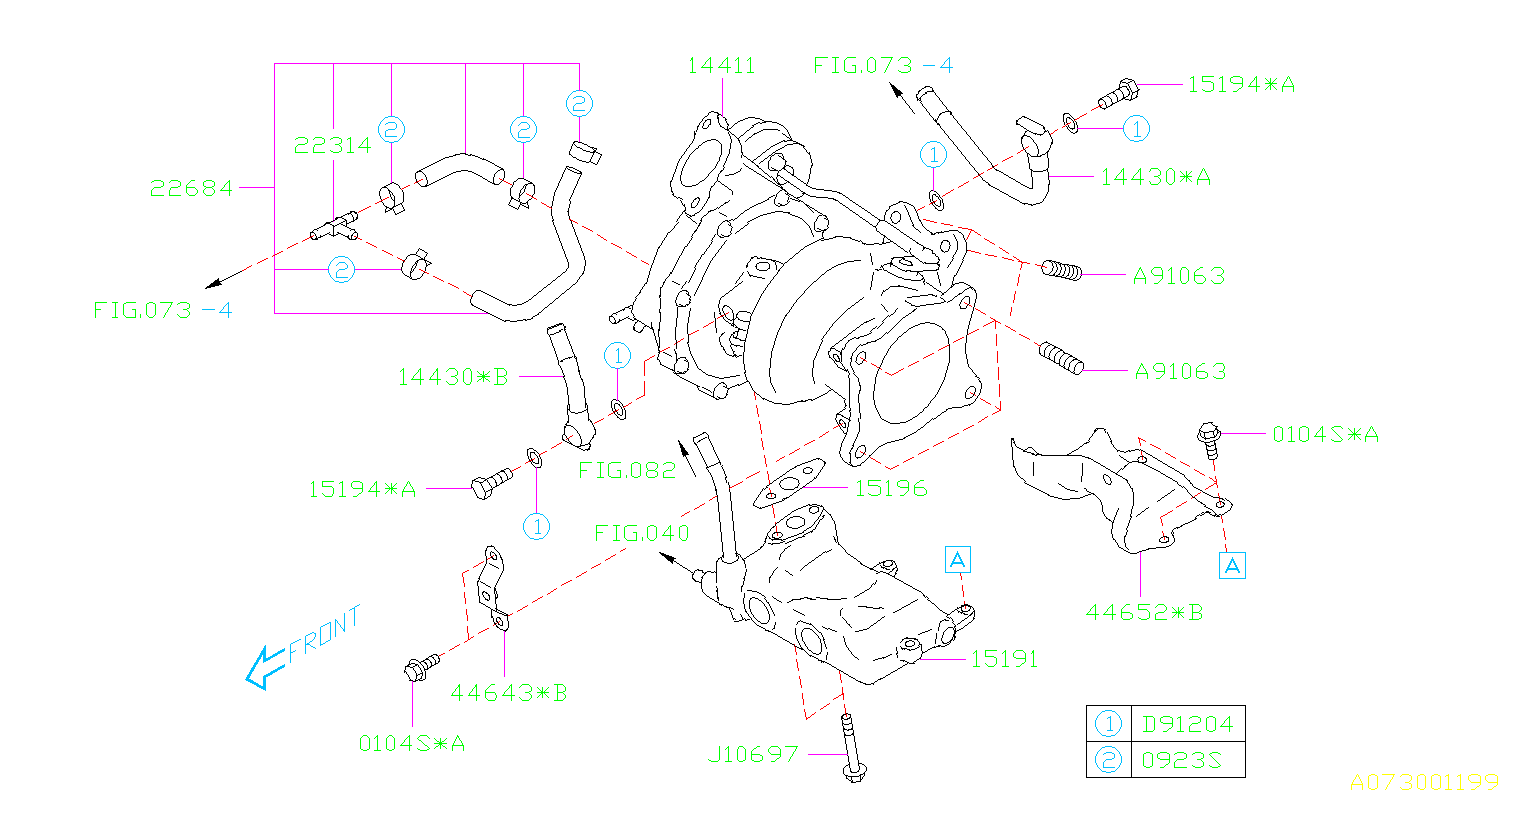 subaru wrx parts line oil turbocharger 0l air bolt 6mt base diagram duct engine turbo system stud cylinder cooling charger